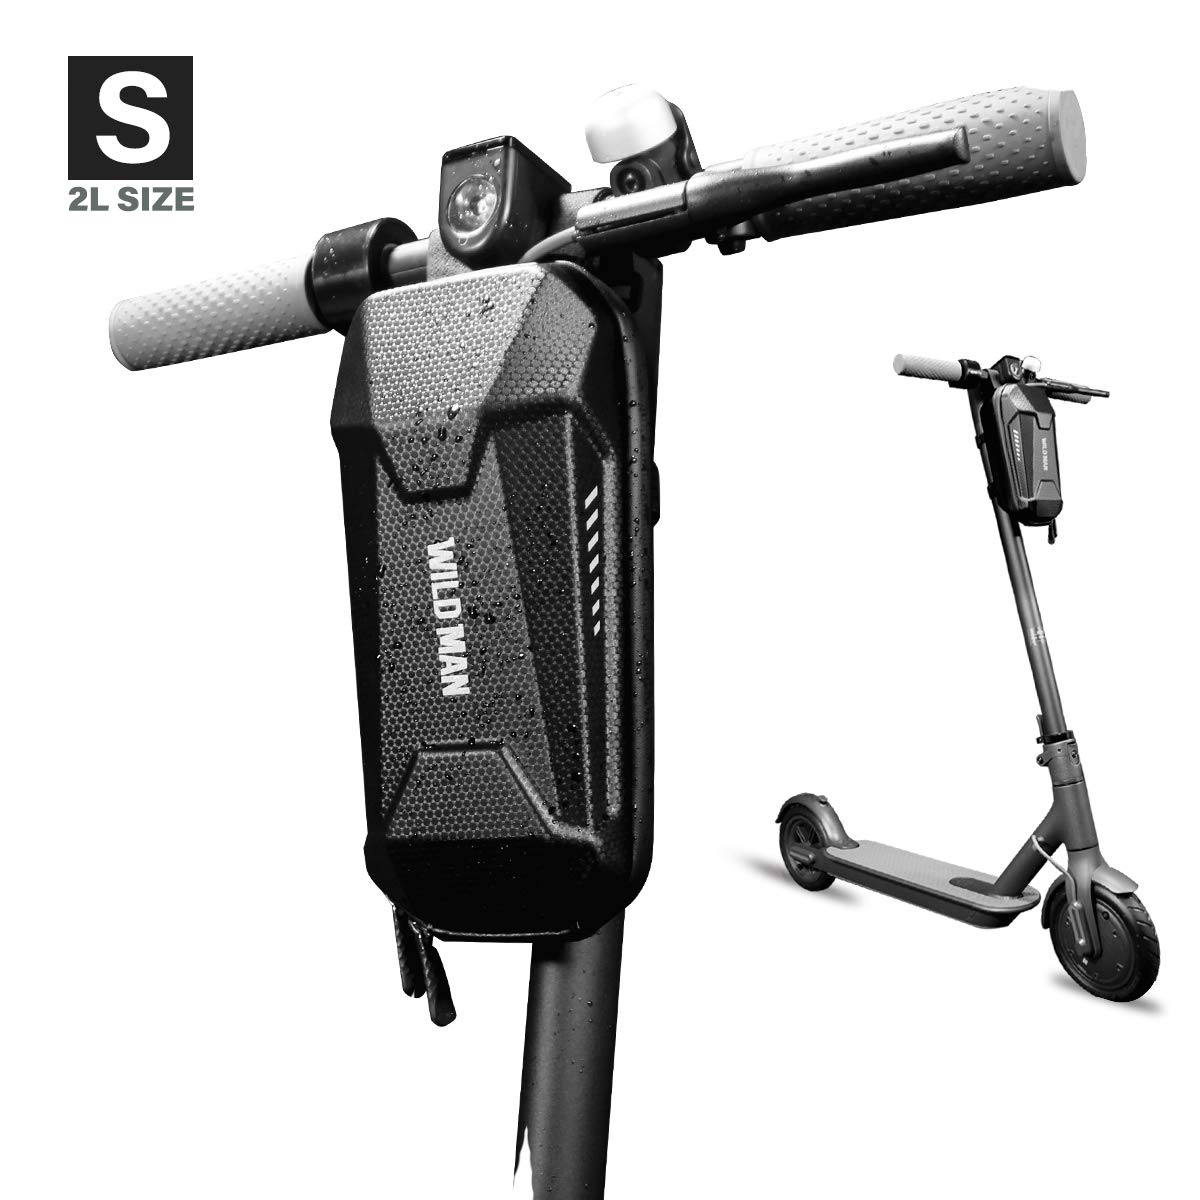 Amazon.com: Seway Scooter Storage Bag, Front Hanging Bag for ...